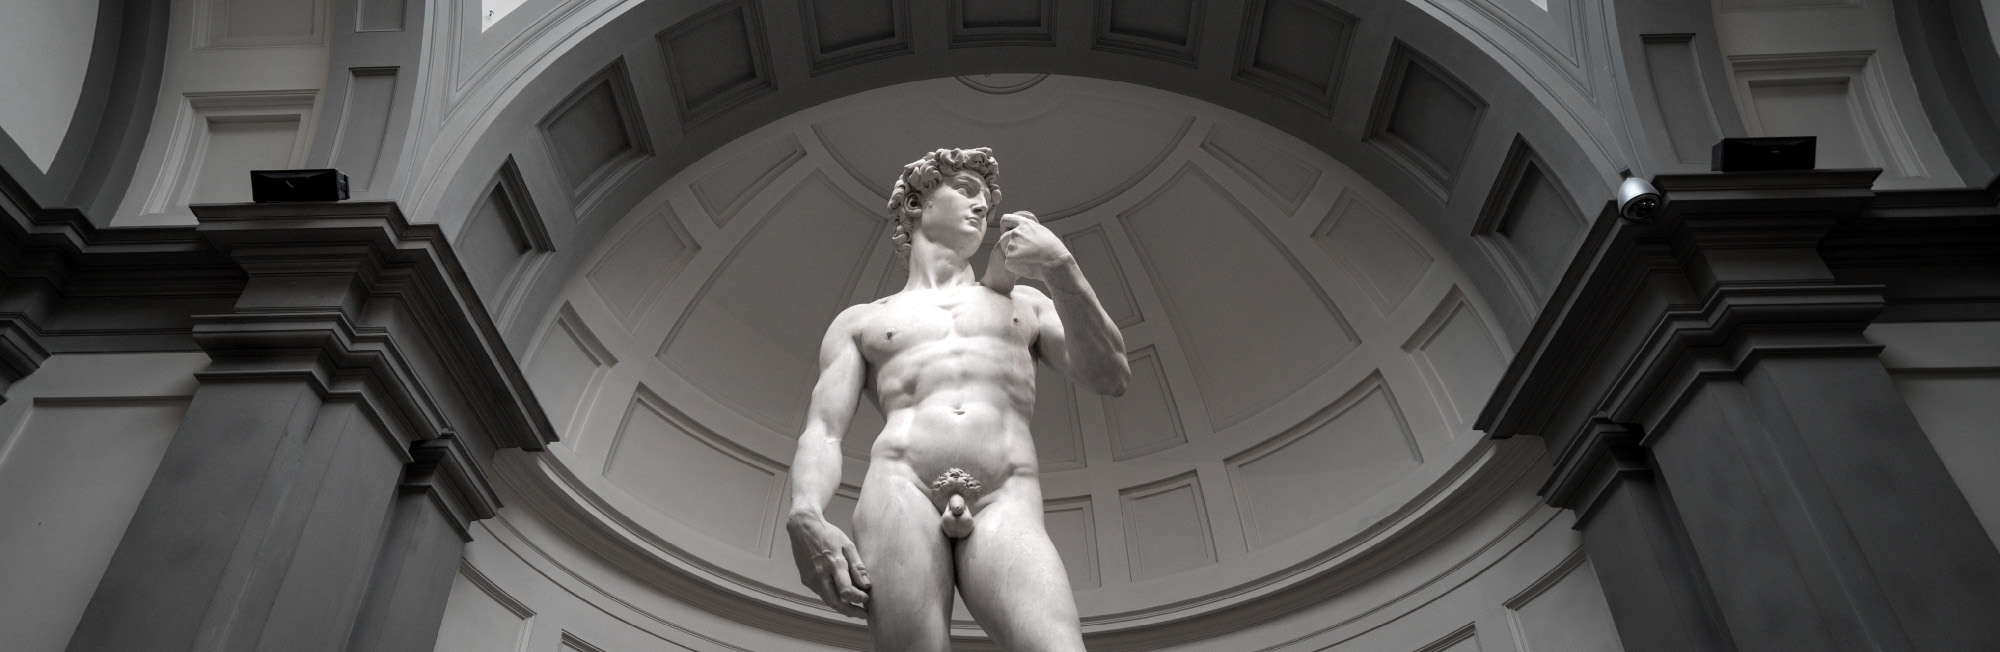 An In-Depth Look at the Accademia Gallery in Florence